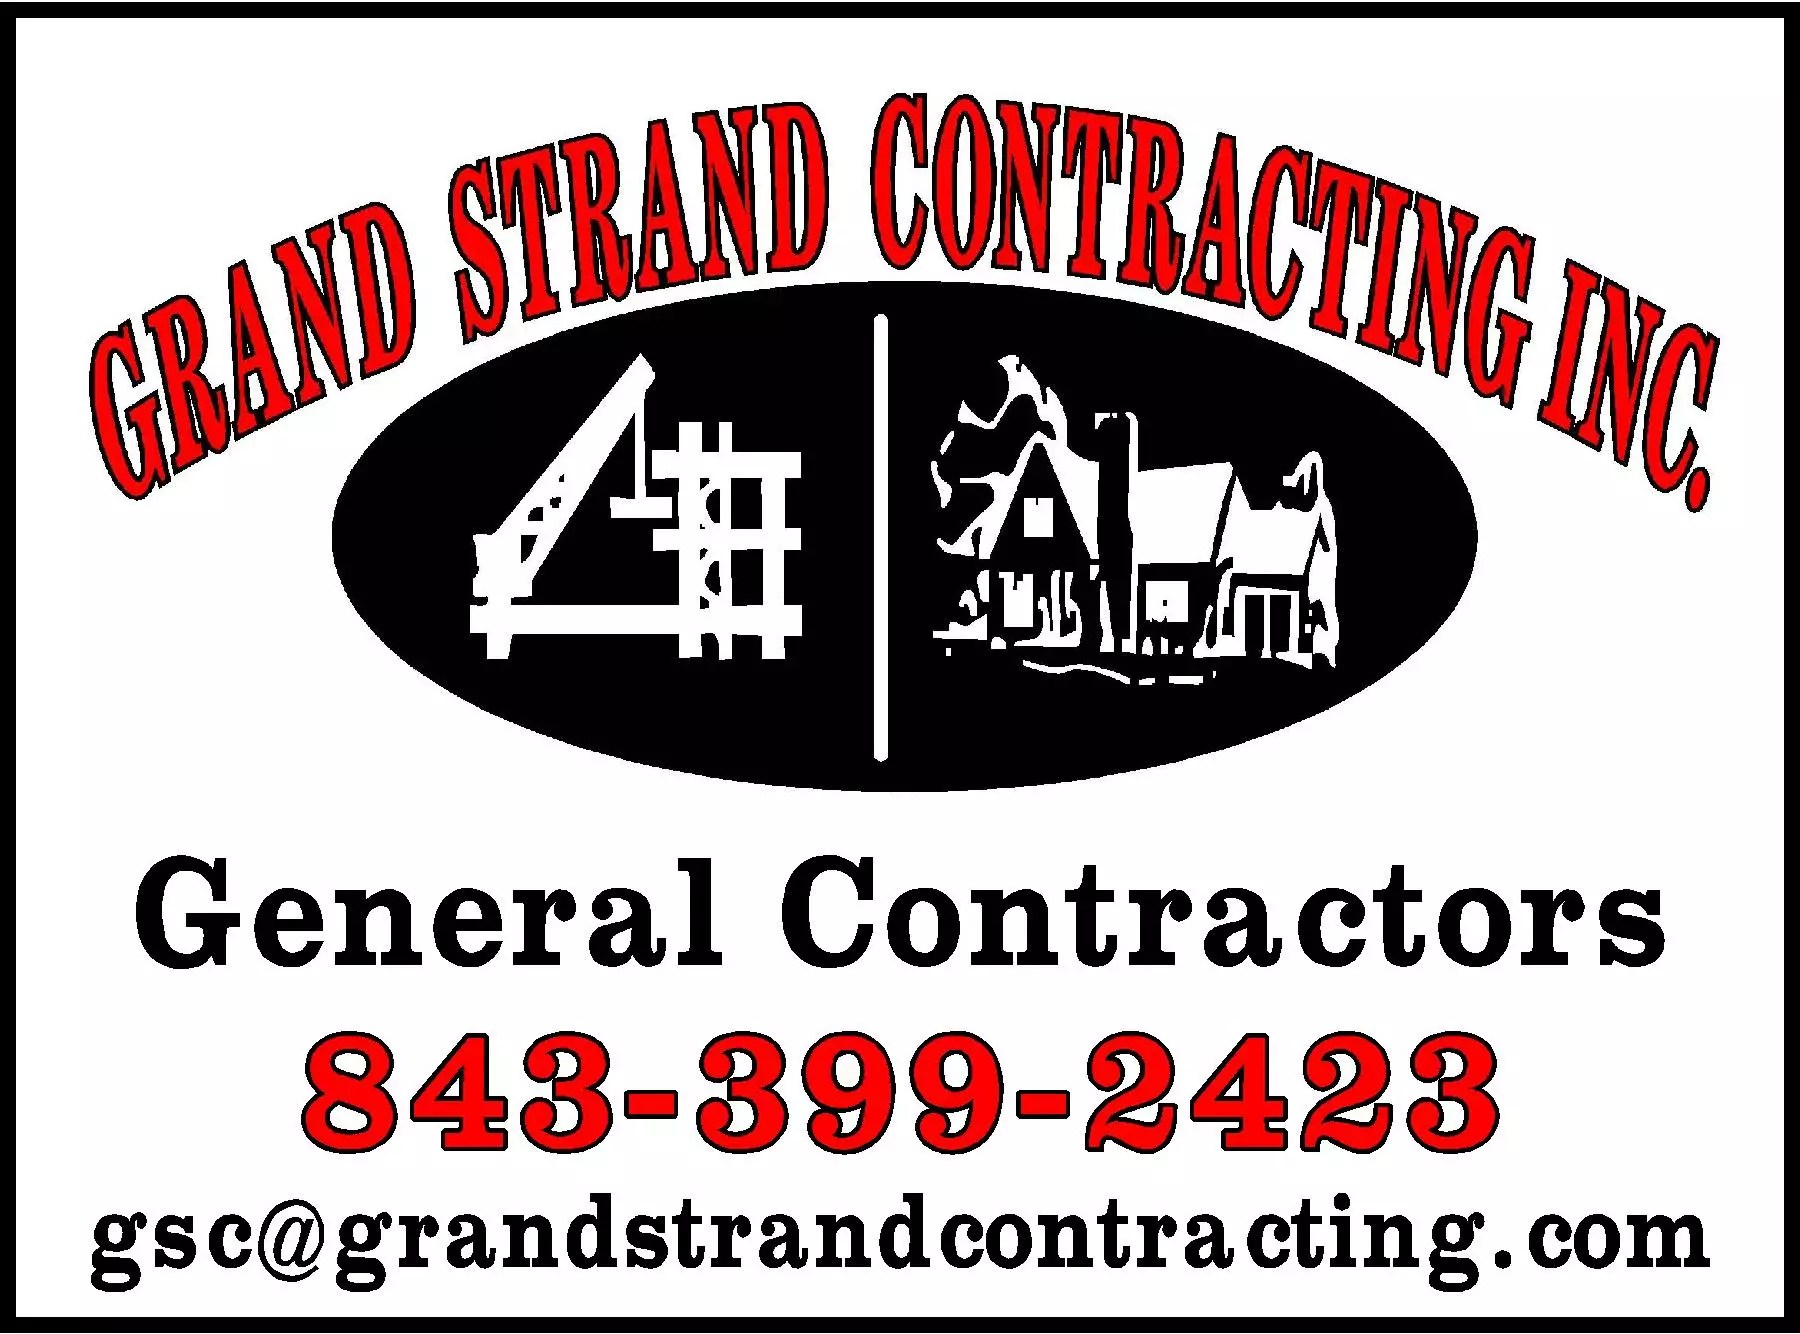 Grand Strand Contracting